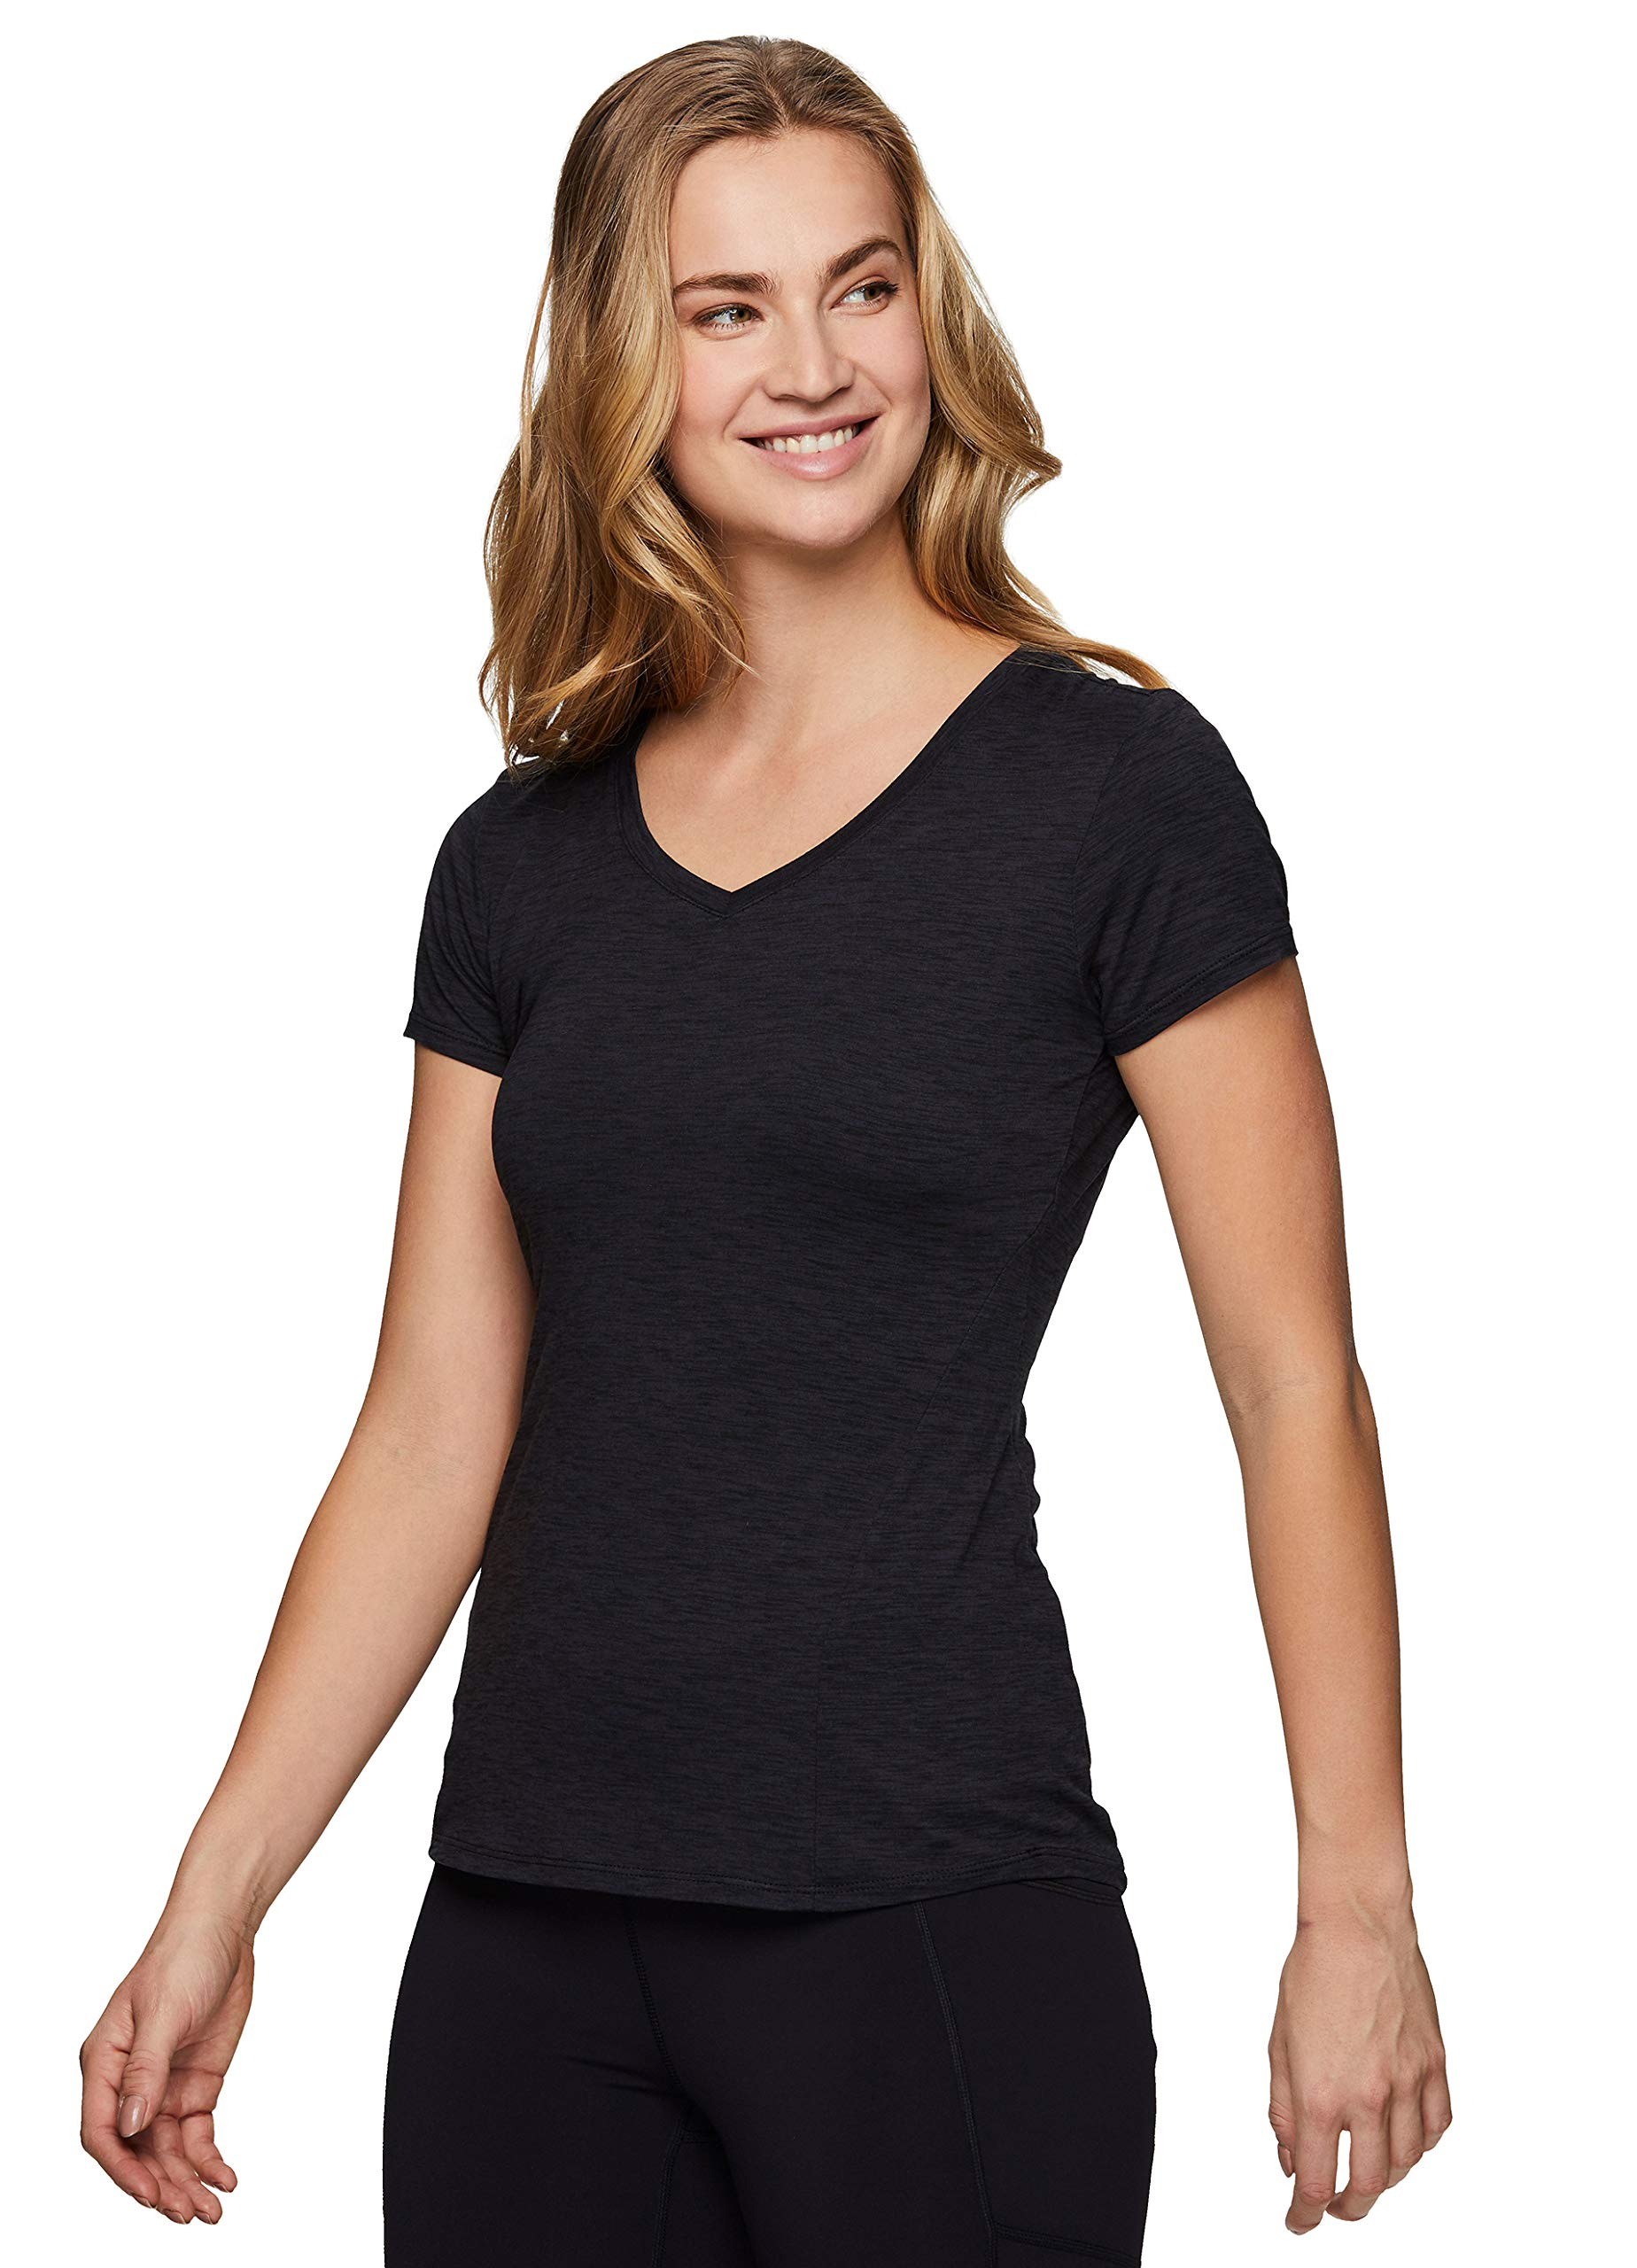 RBX Active Women's Athletic Quick Dry Space Dye Short Sleeve Yoga T-Shirt